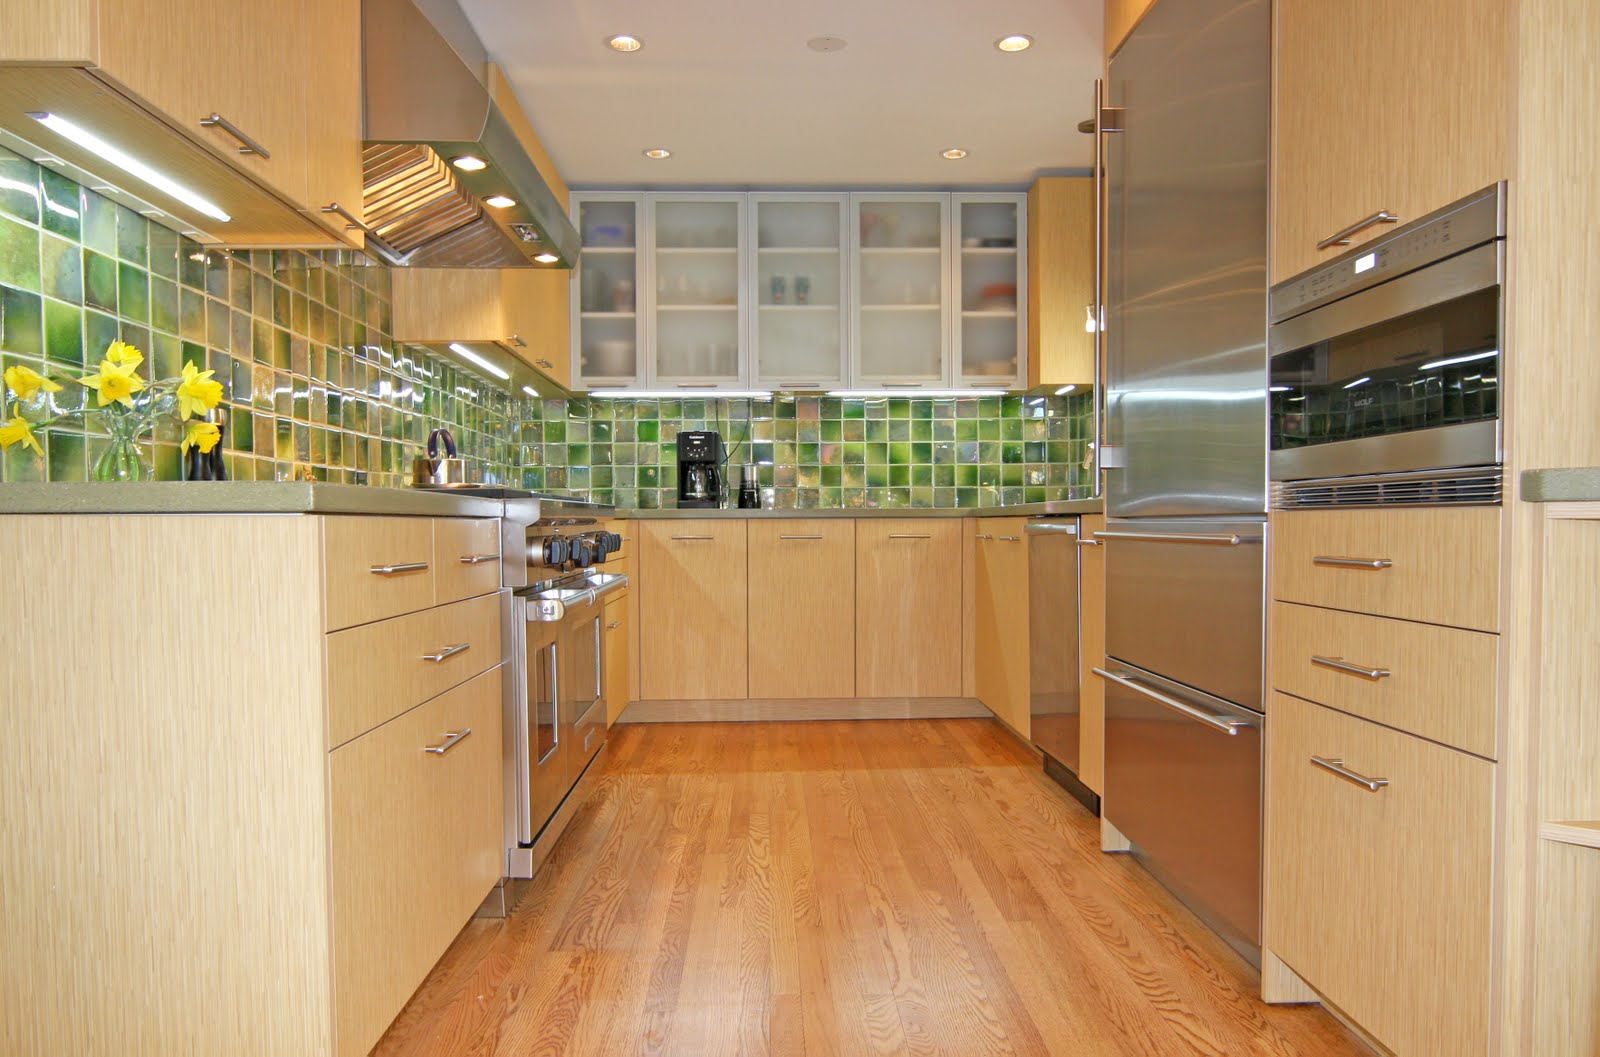 3ccchicago green remodel gourmet galley kitchen remodel for Galley kitchen remodel ideas